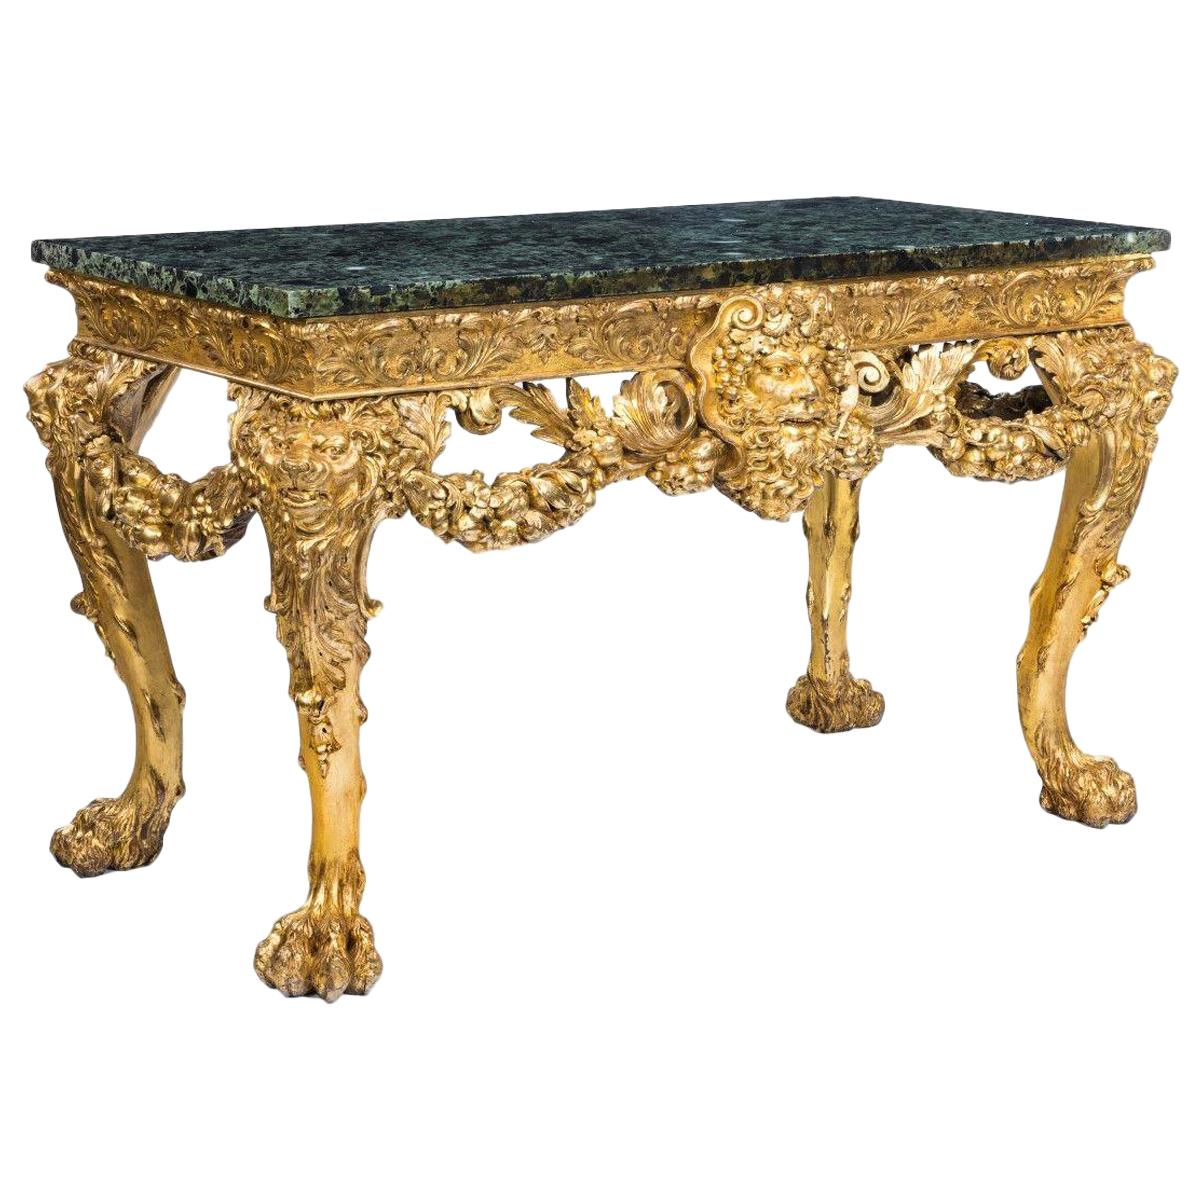 Imposing Victorian Giltwood Console Table in the Manner of William Kent